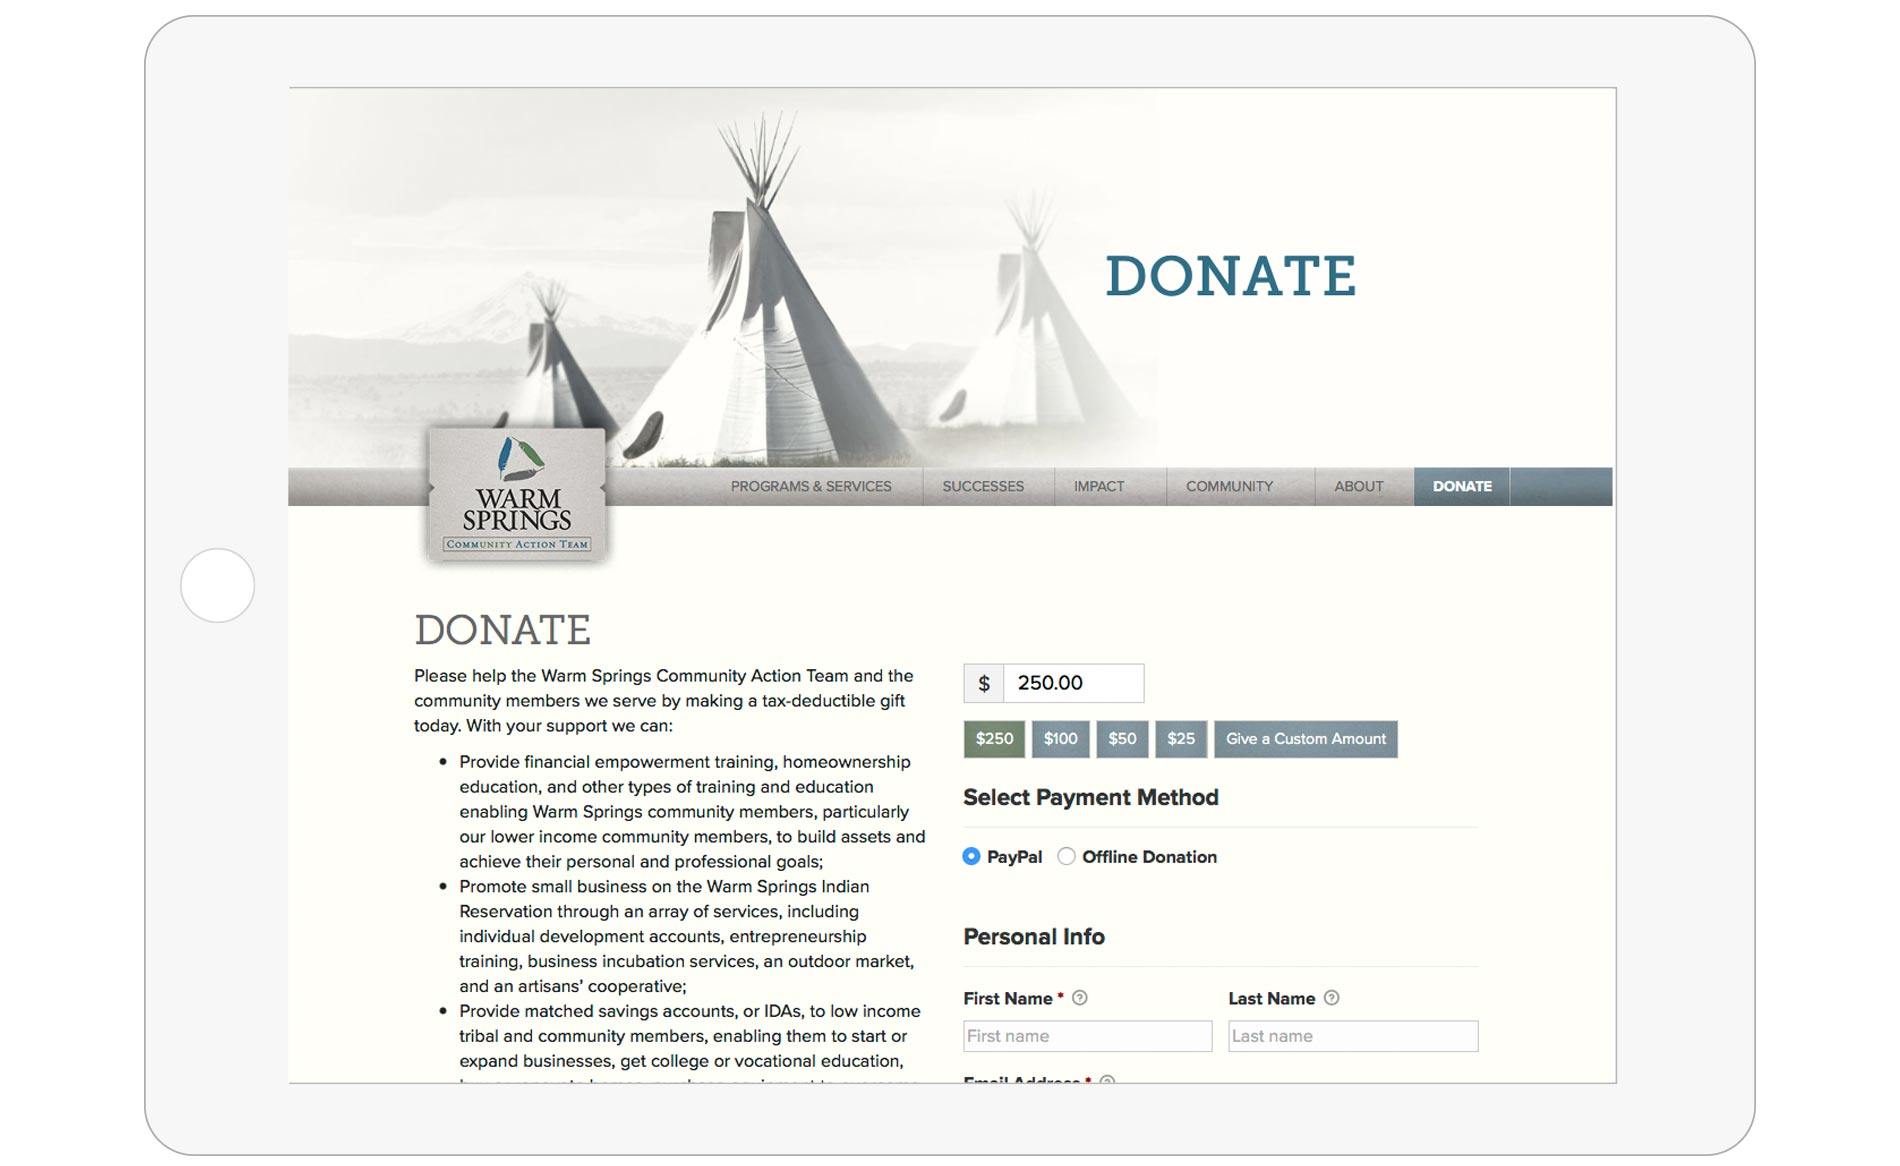 Warm Springs Community Action Team Website Design - Donate Page